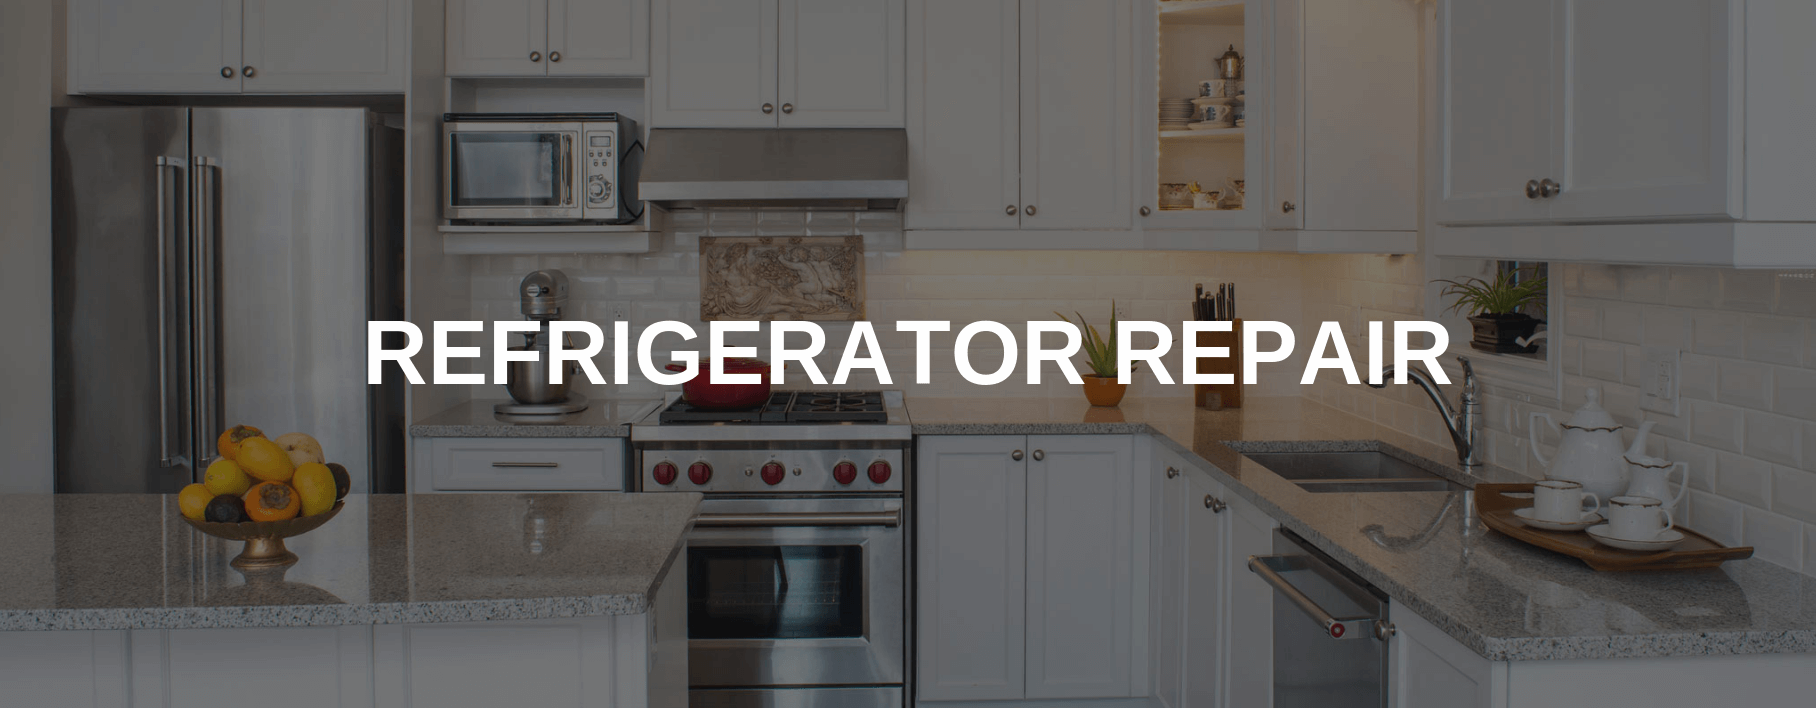 union refrigerator repair